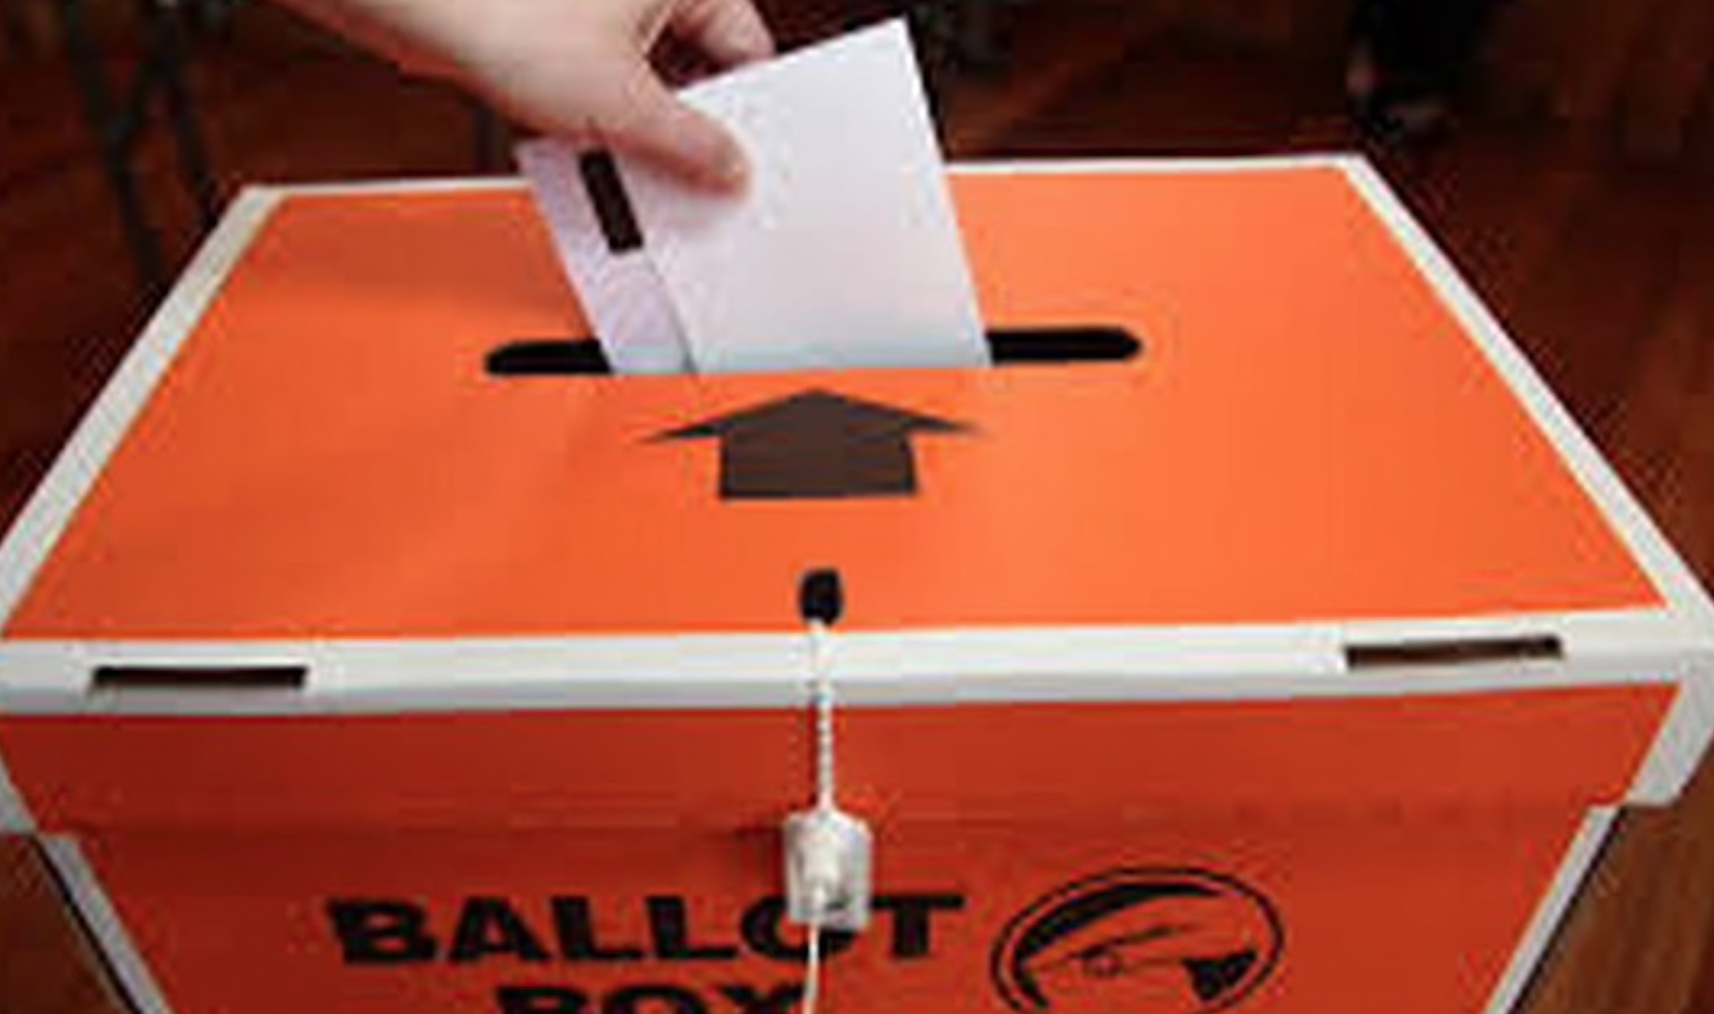 Of course we should lower the voting age to 16 (and 5 other ways to make NZ Democracy better) | The Daily Blog